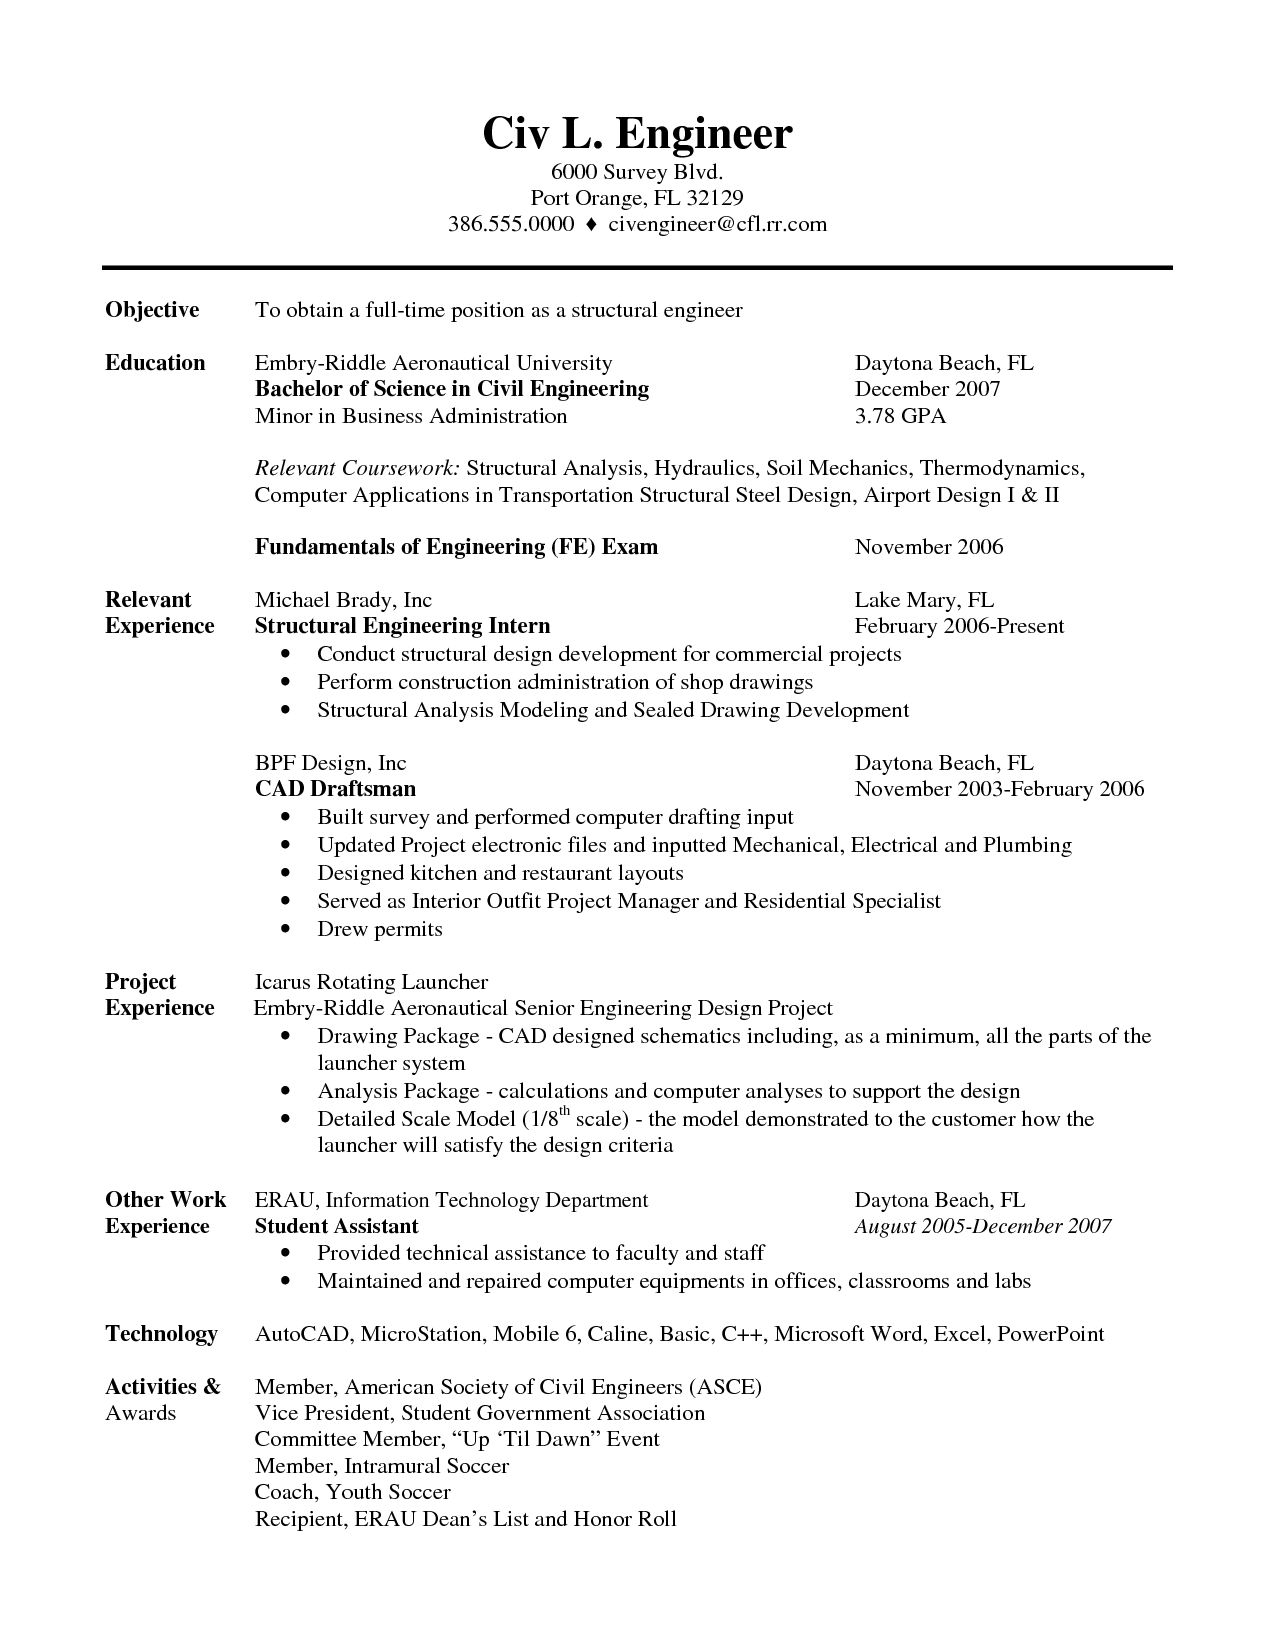 College Student Resume Examples Image Result For Mechanical Engineering Student Resume  Resumes